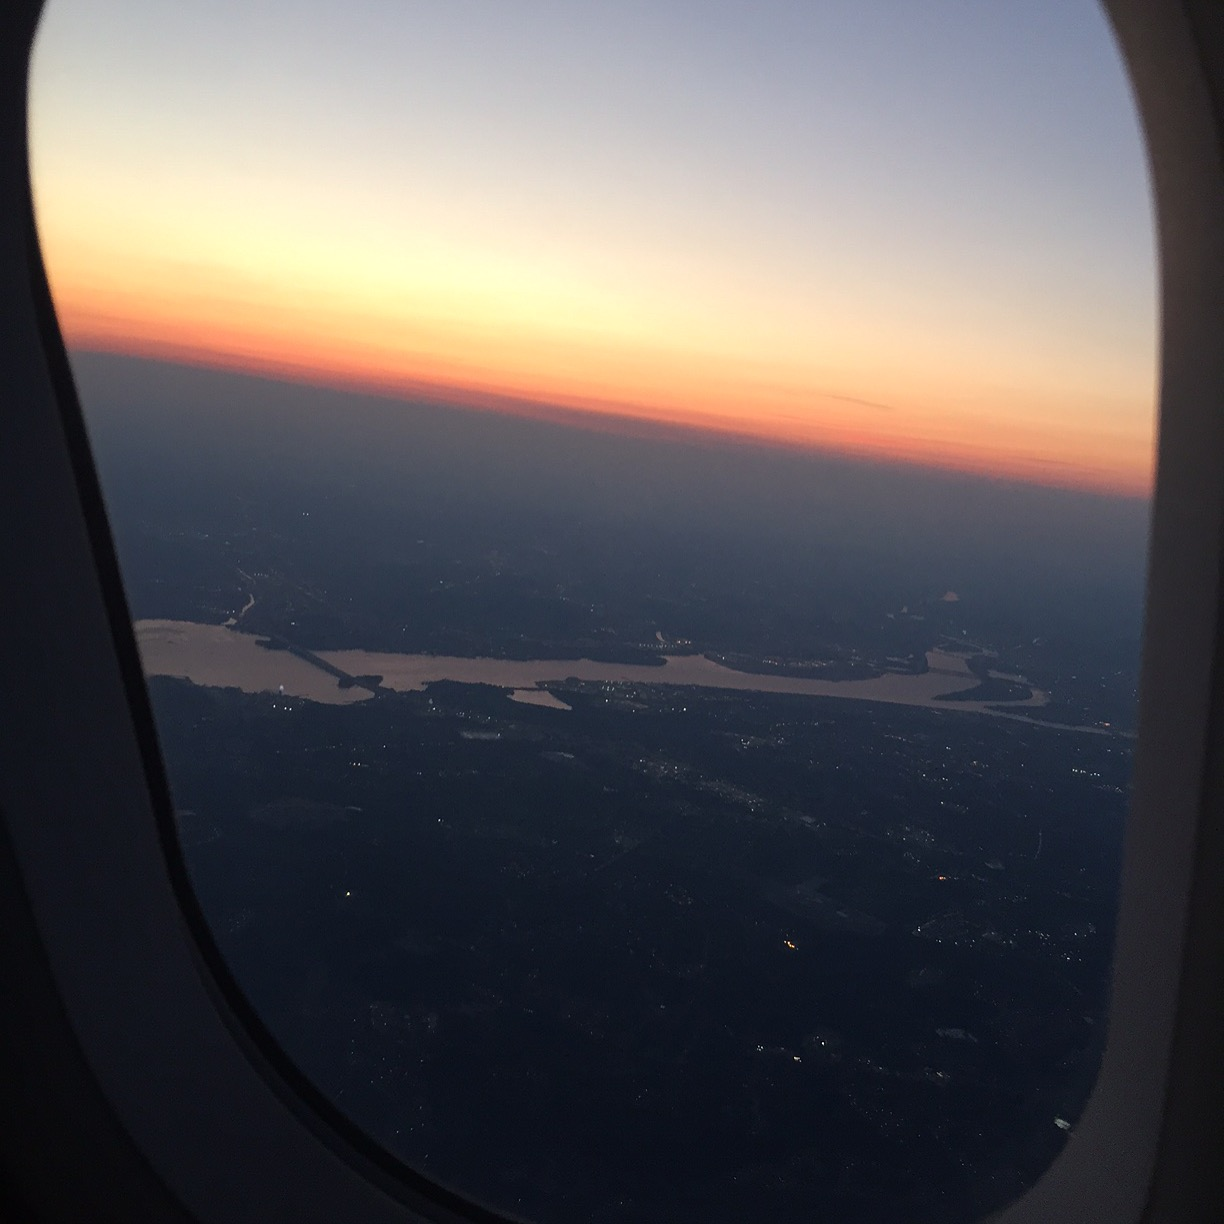 I love taking photos from airplane windows.